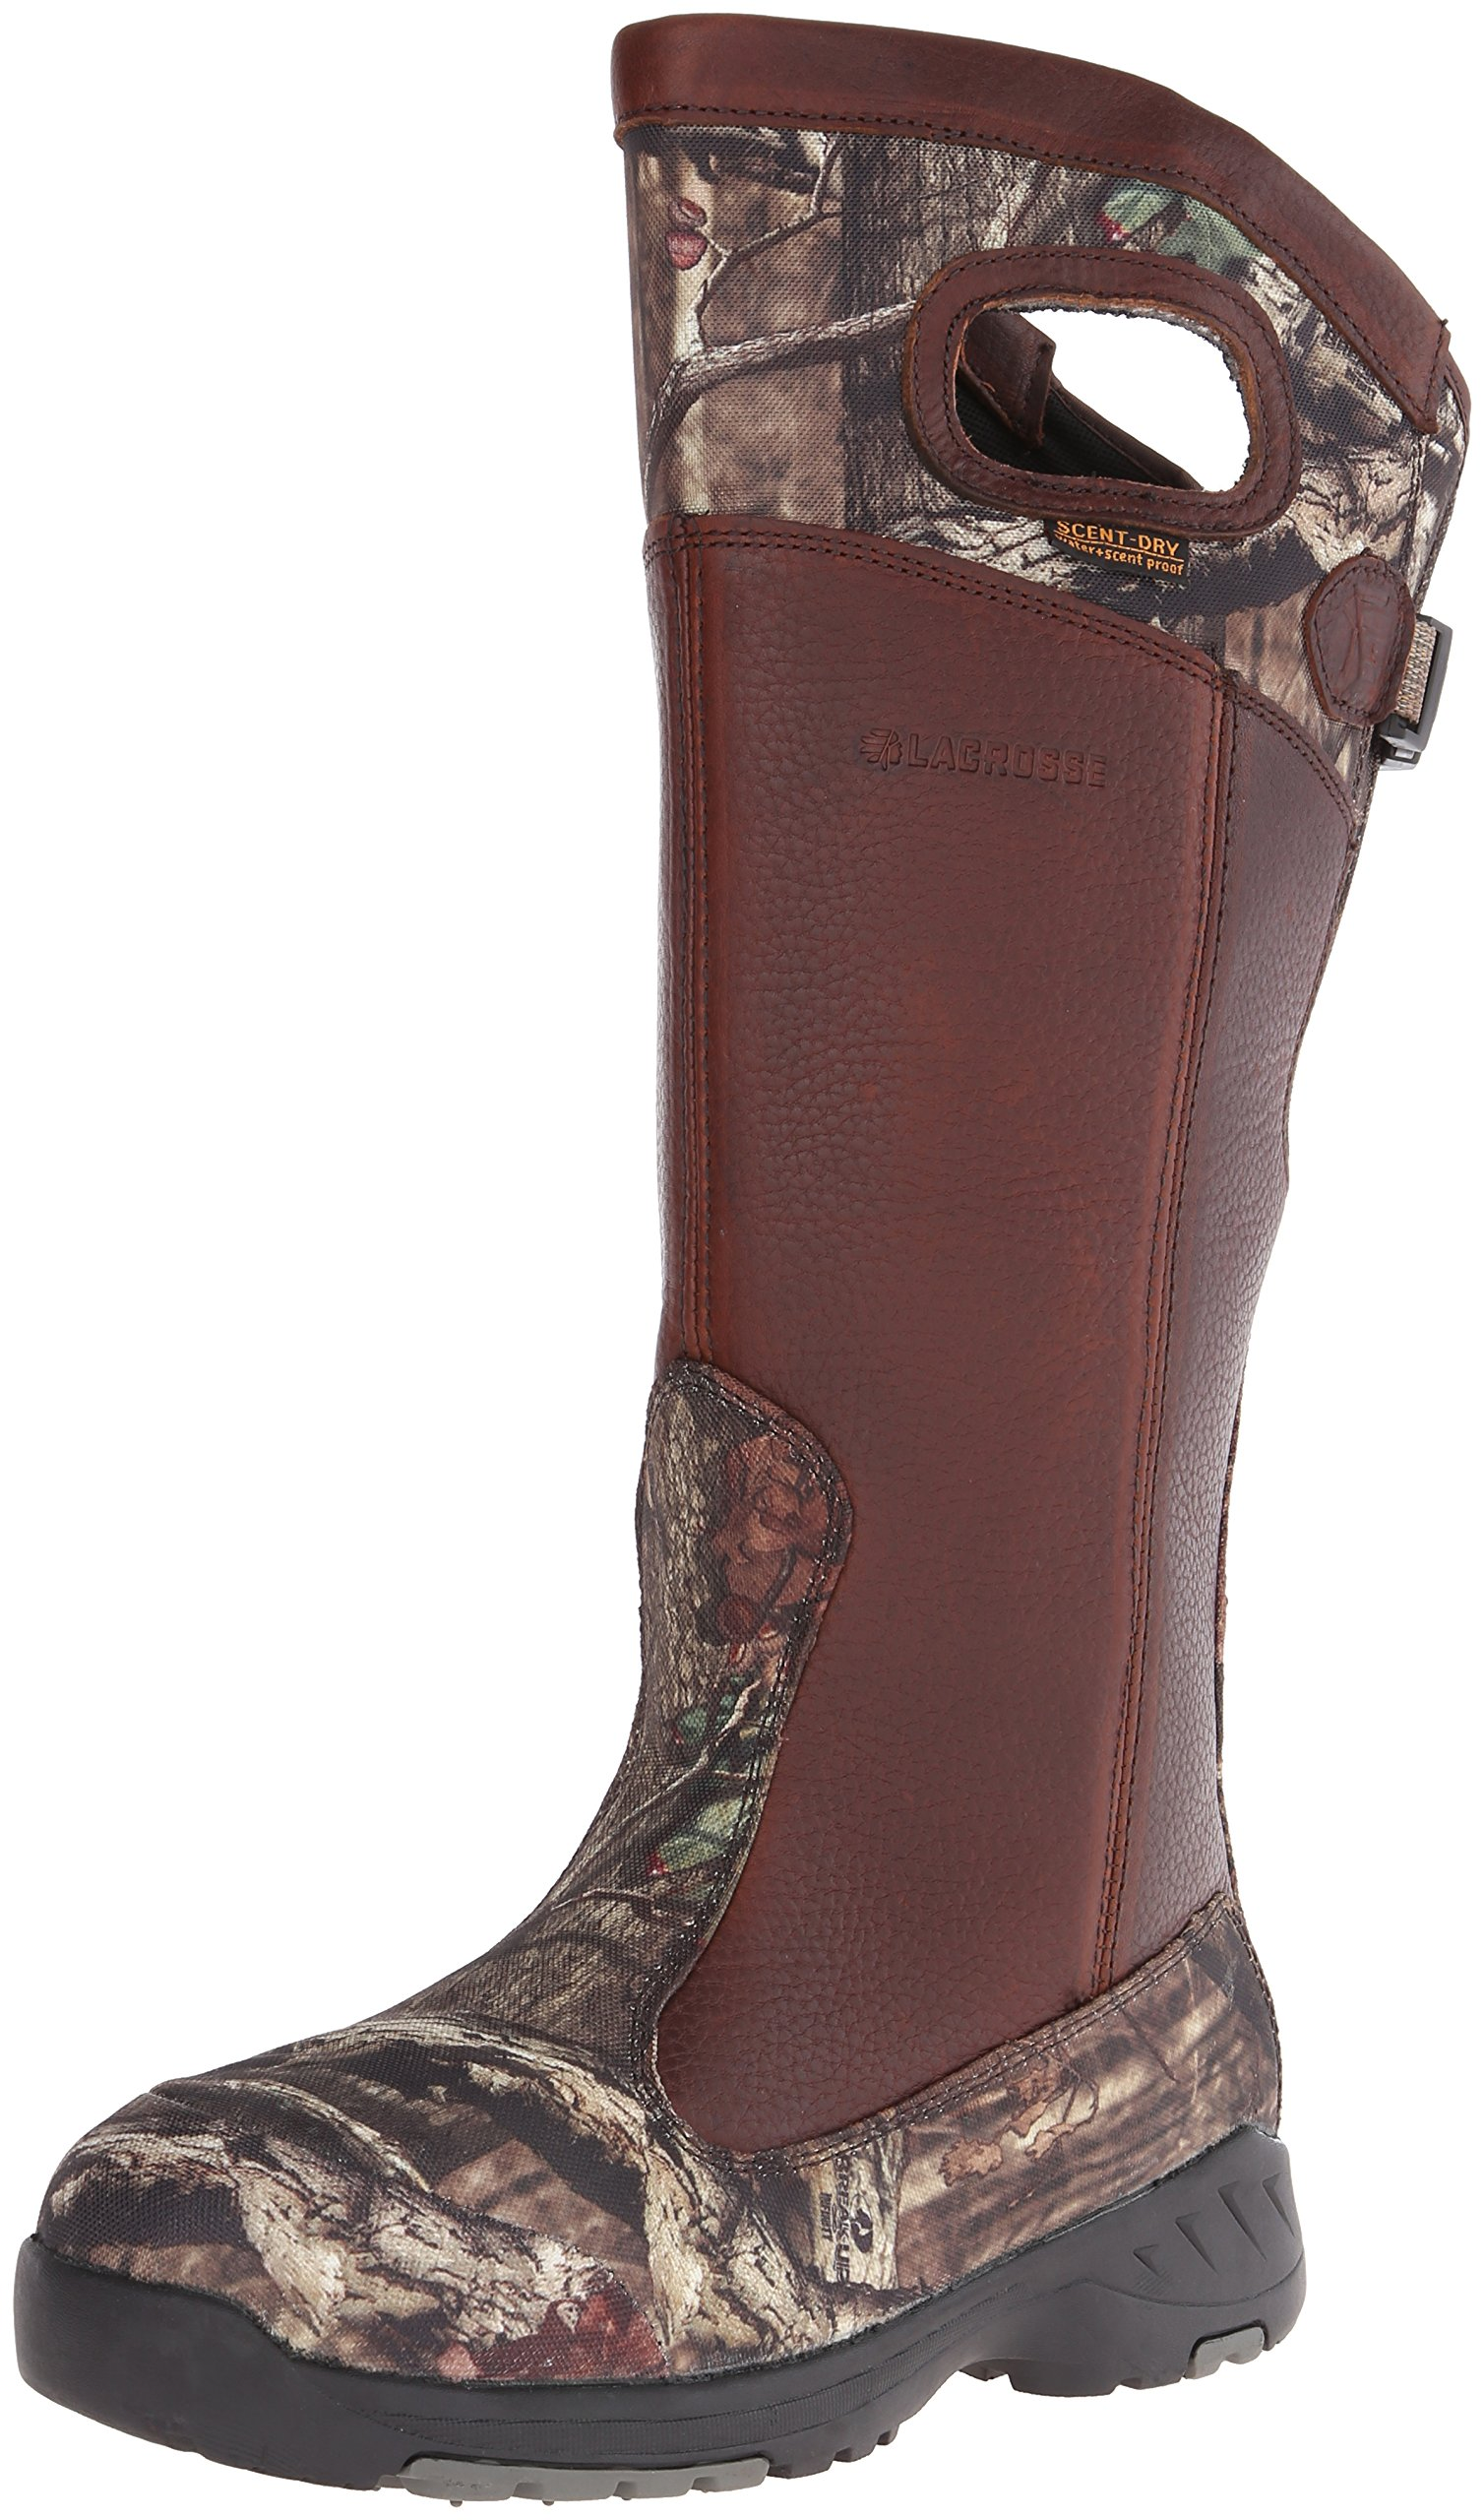 "LaCrosse Men's Adder 18"" Snake Boot,Brown/Mossy Oak Infinity,10.5 M US"